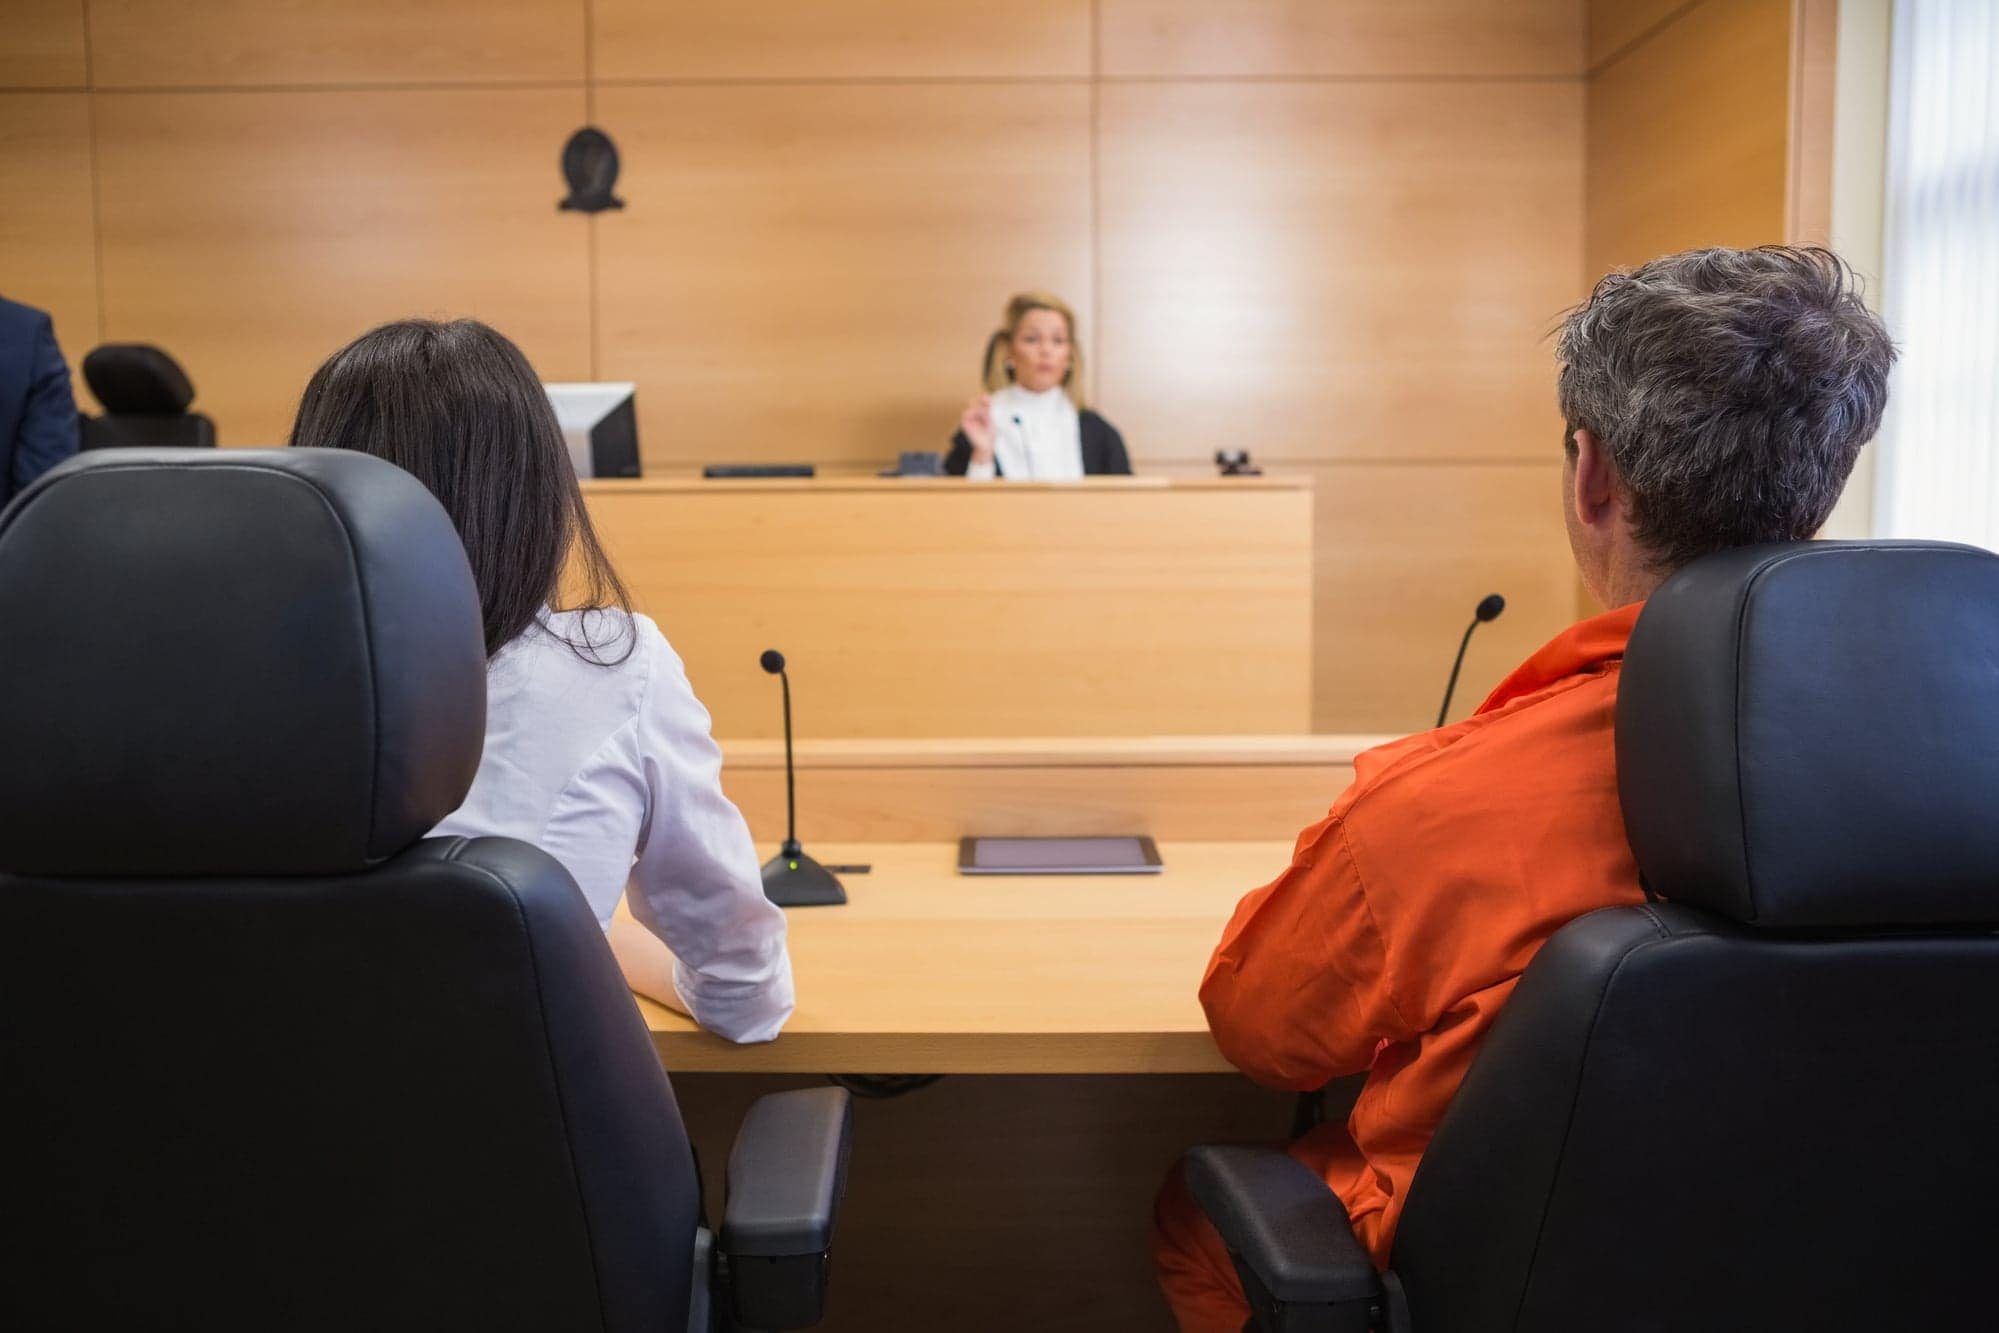 Lawyer and client listening to judge in the court room